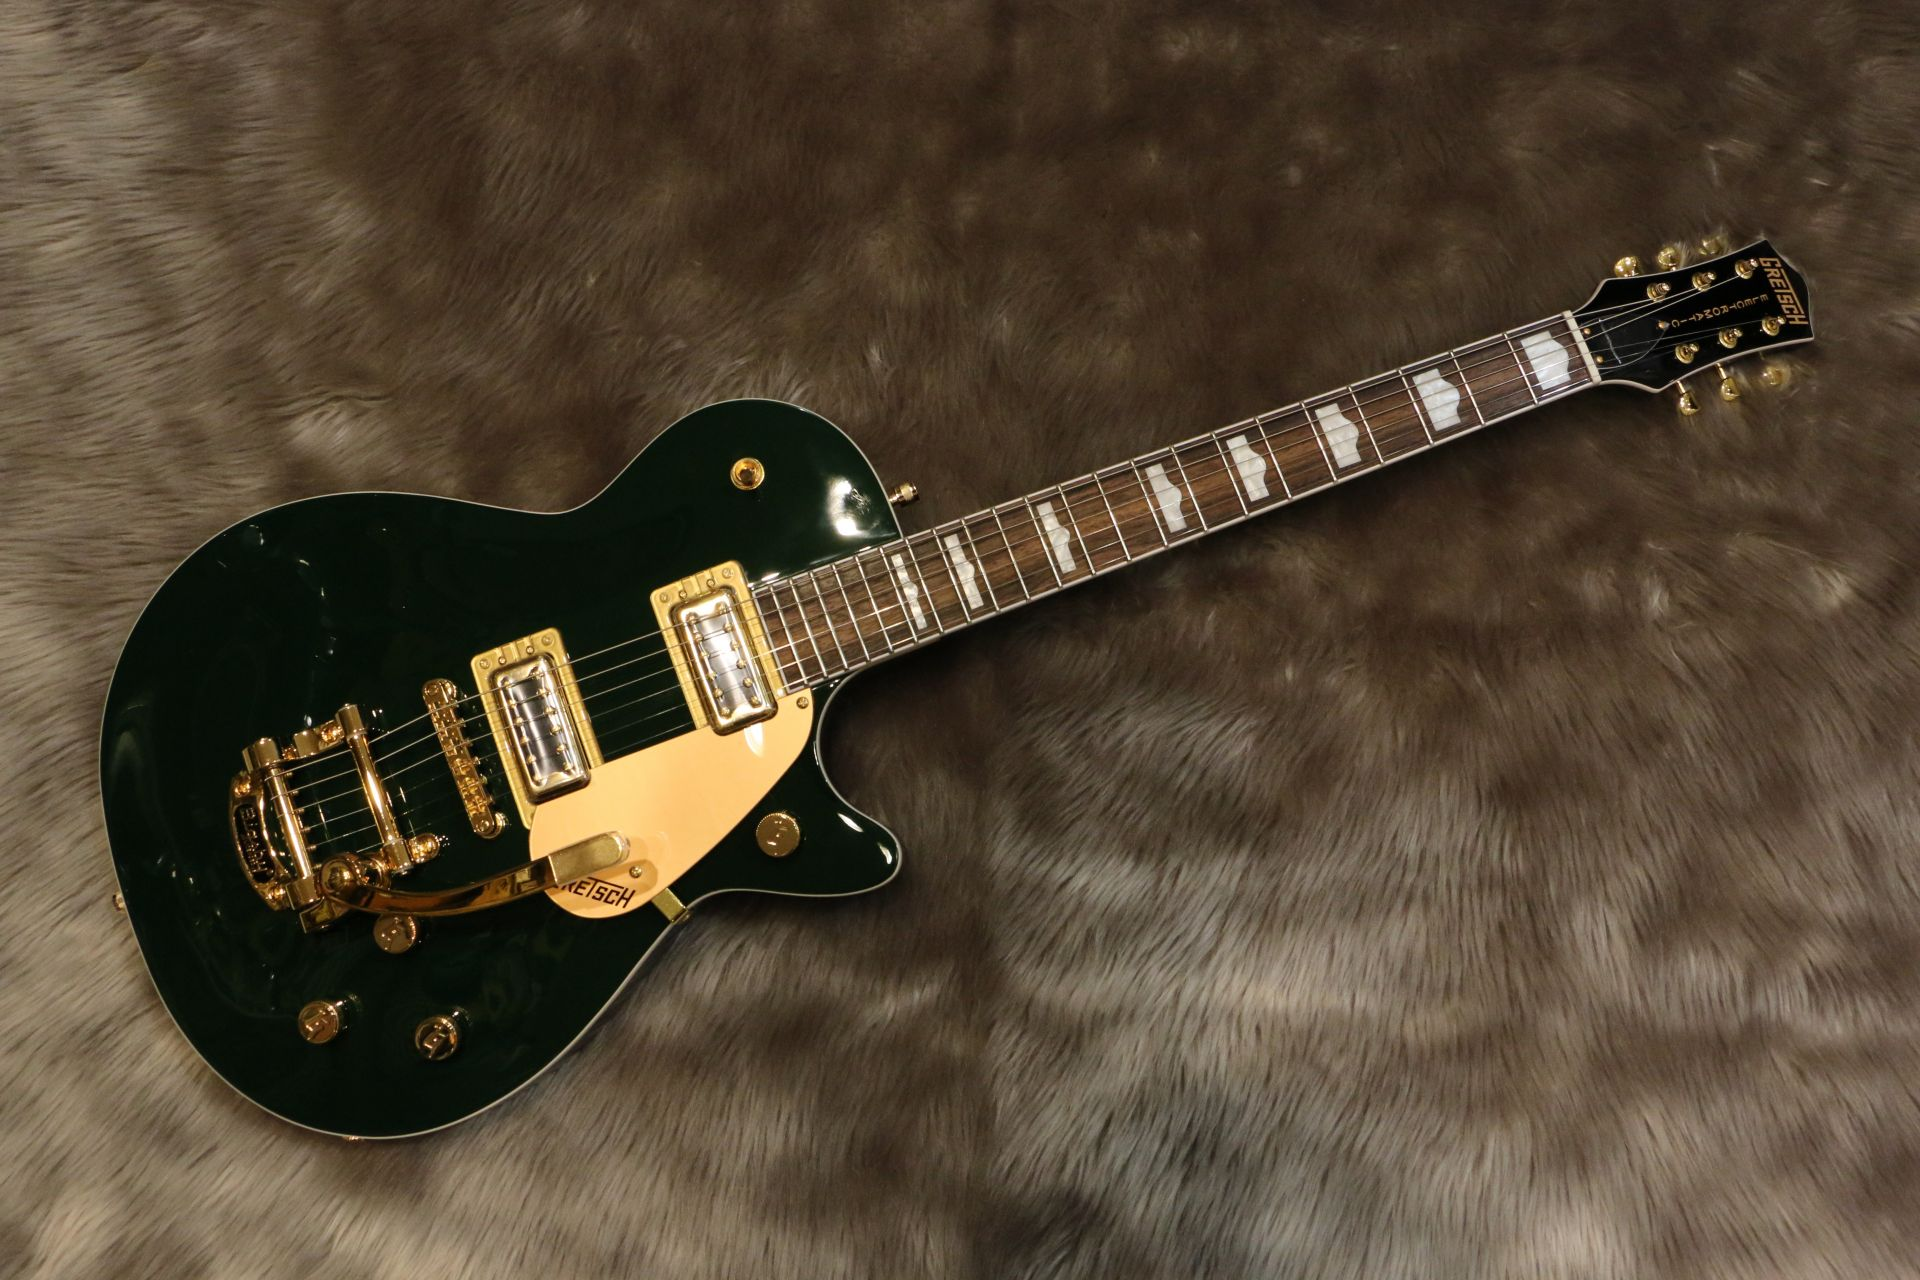 G5435TG Limited Edition Pro Jet with Bigsby